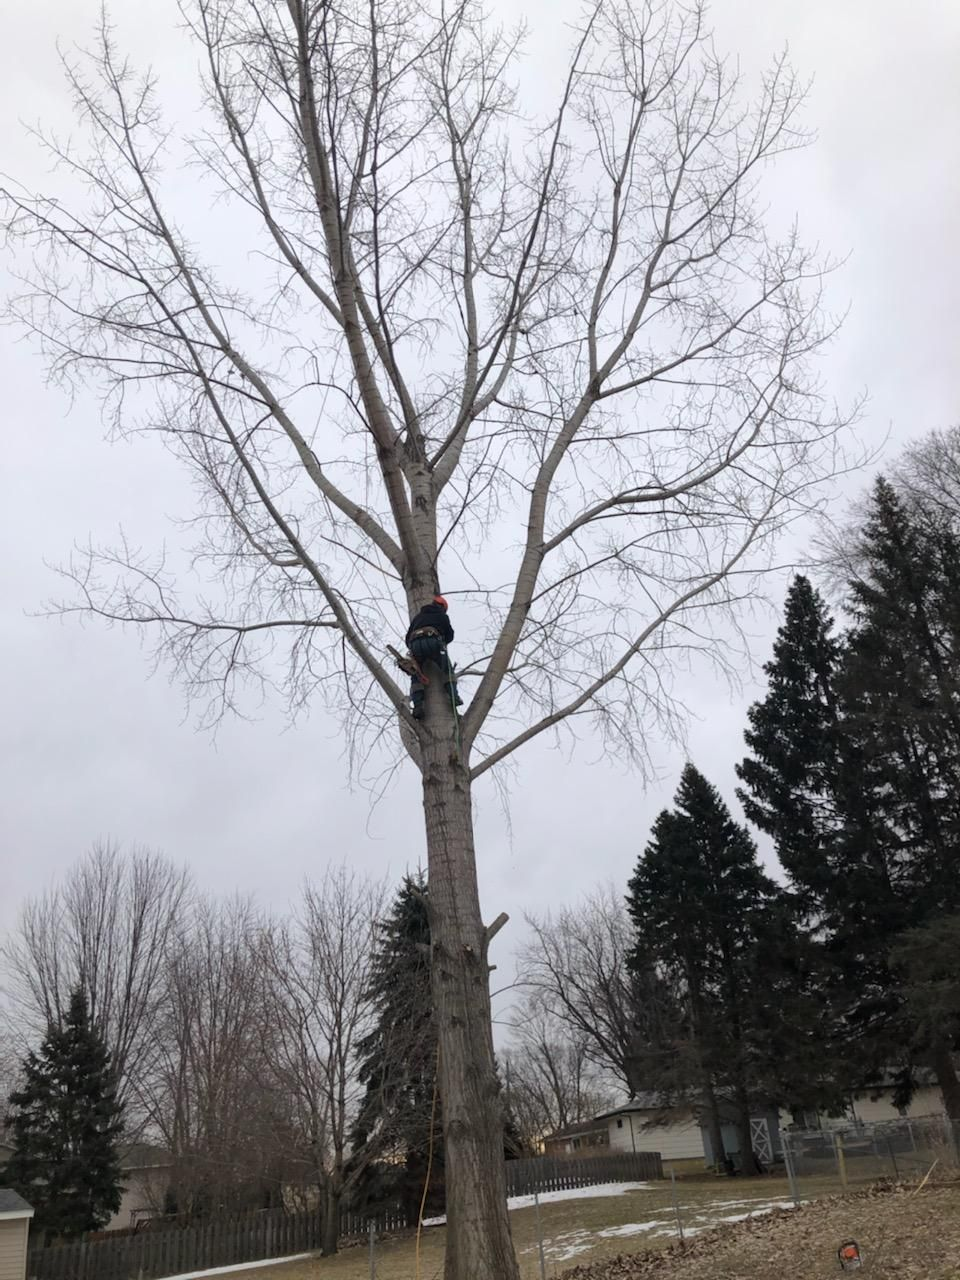 Removal of cottonwood